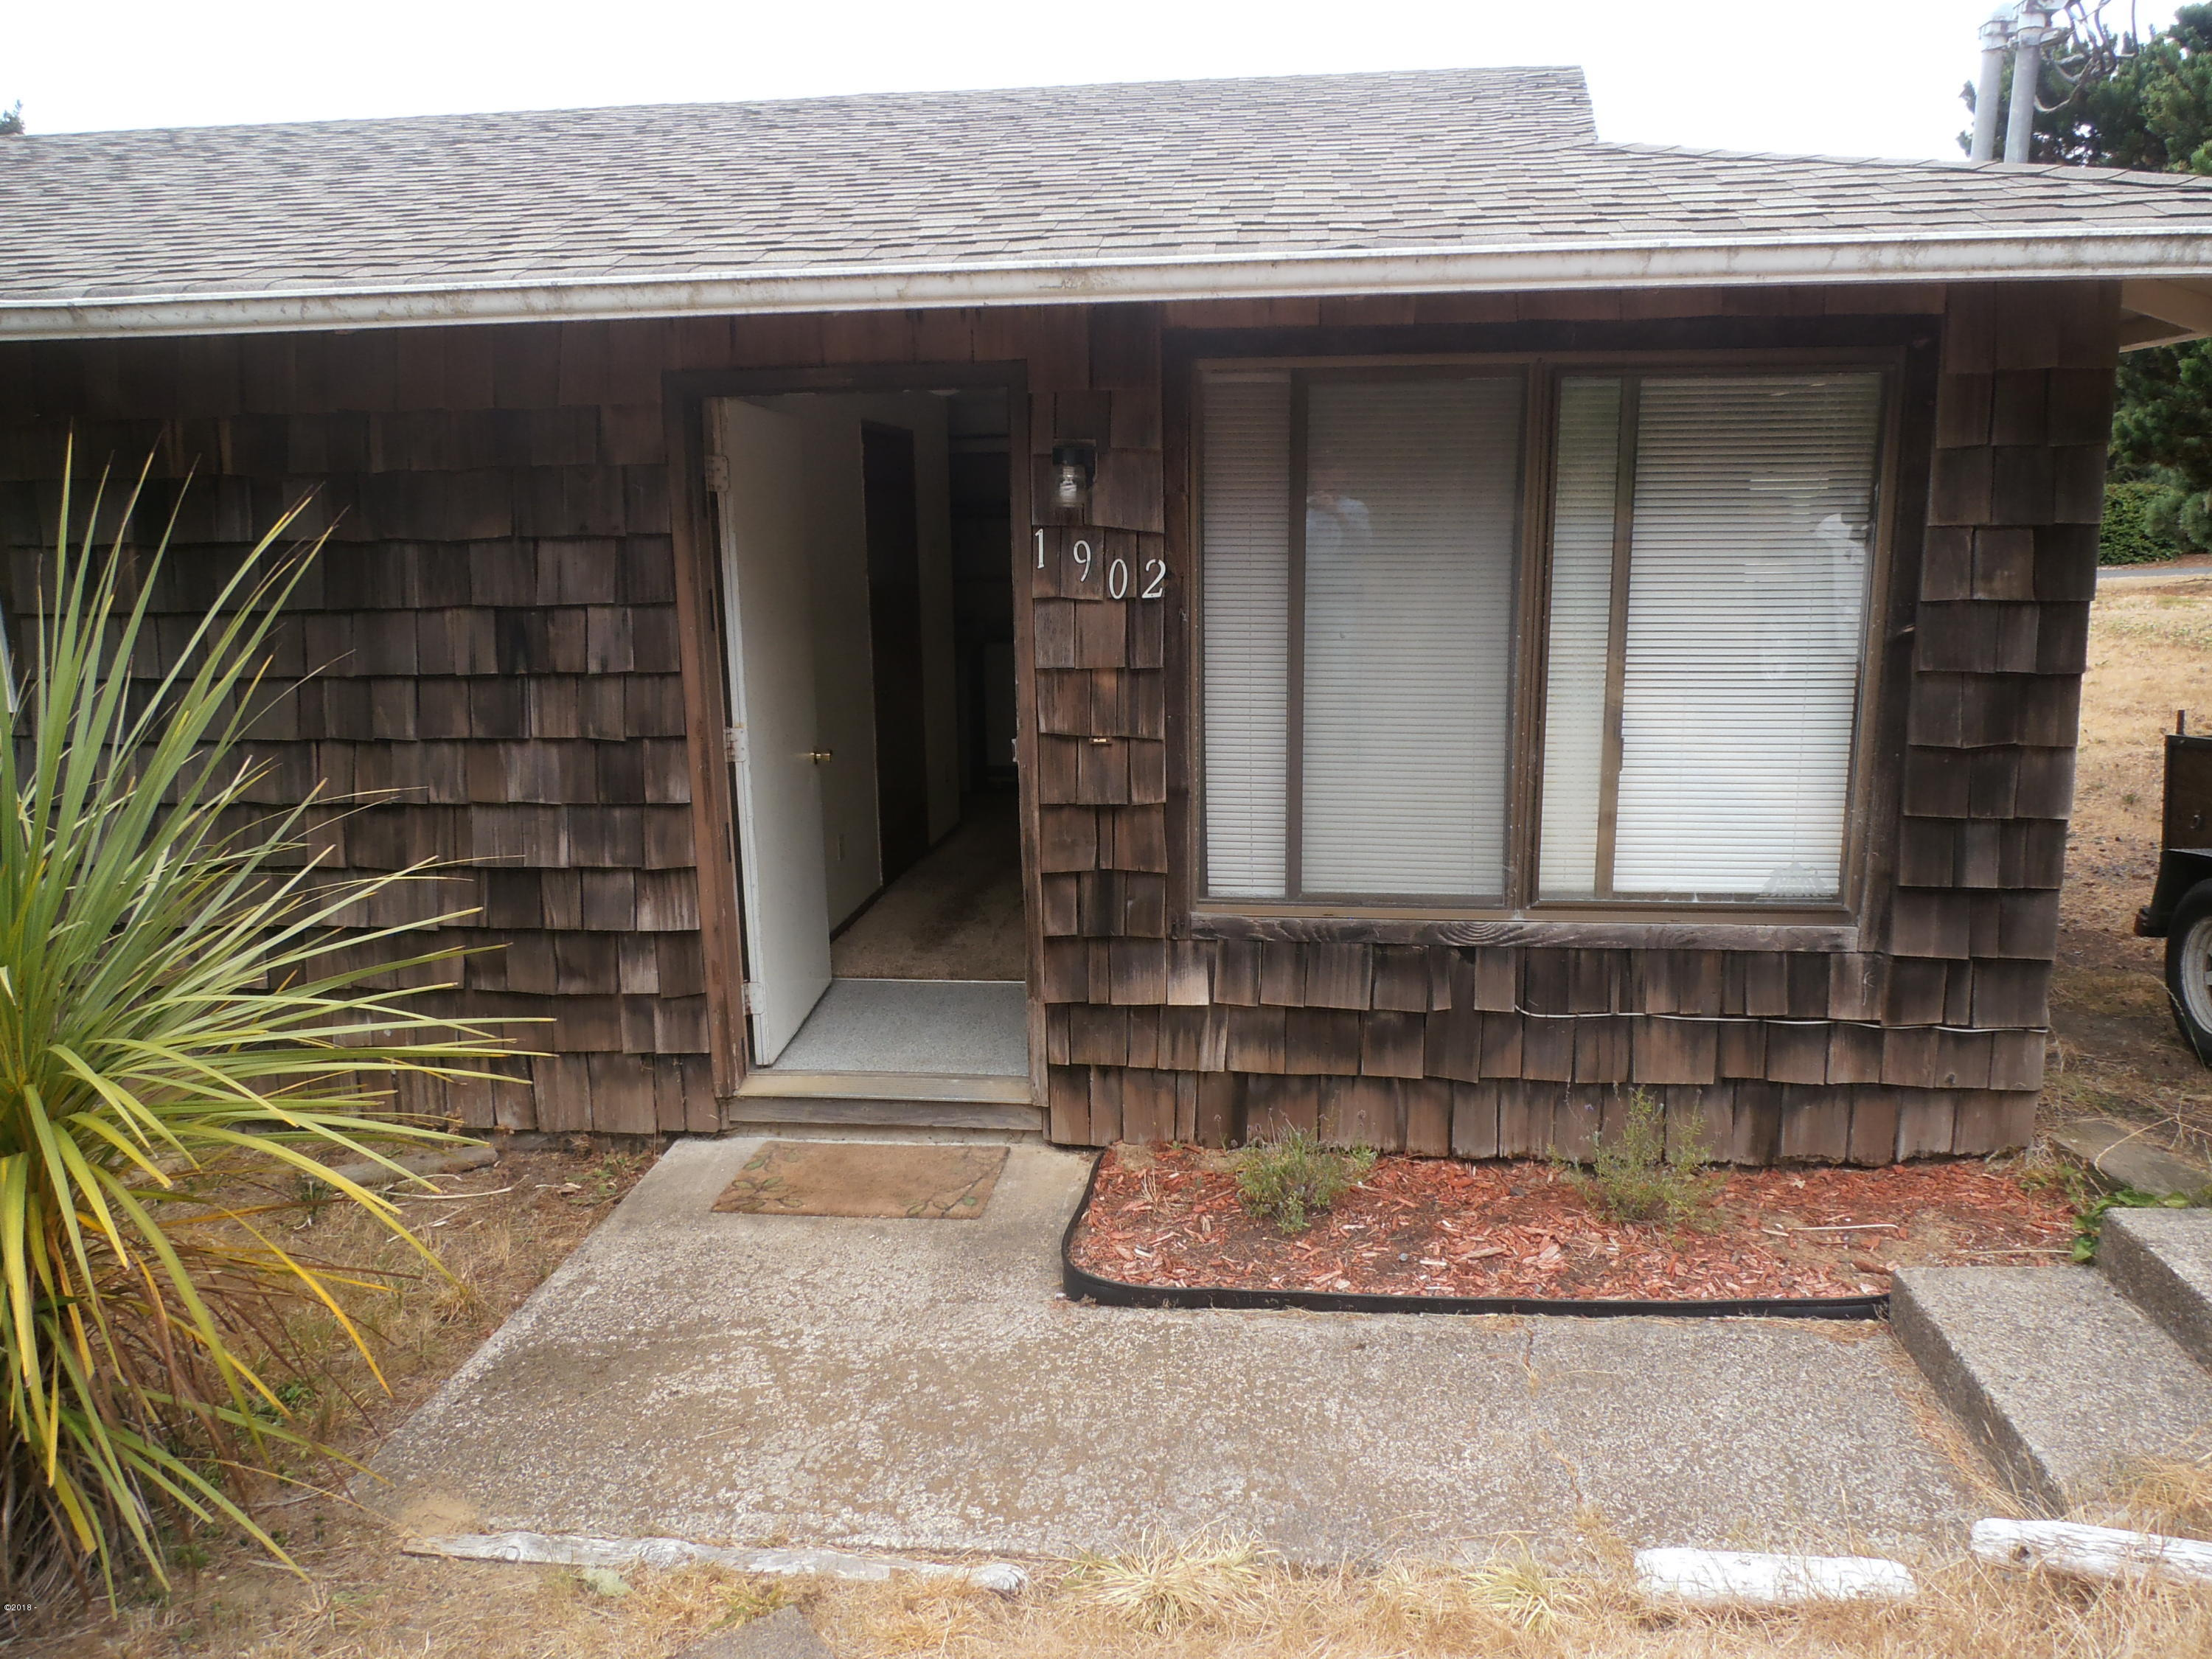 1900/1902 NW Hilton Dr, 1 & 2, Waldport, OR 97394 - 1902 front of home